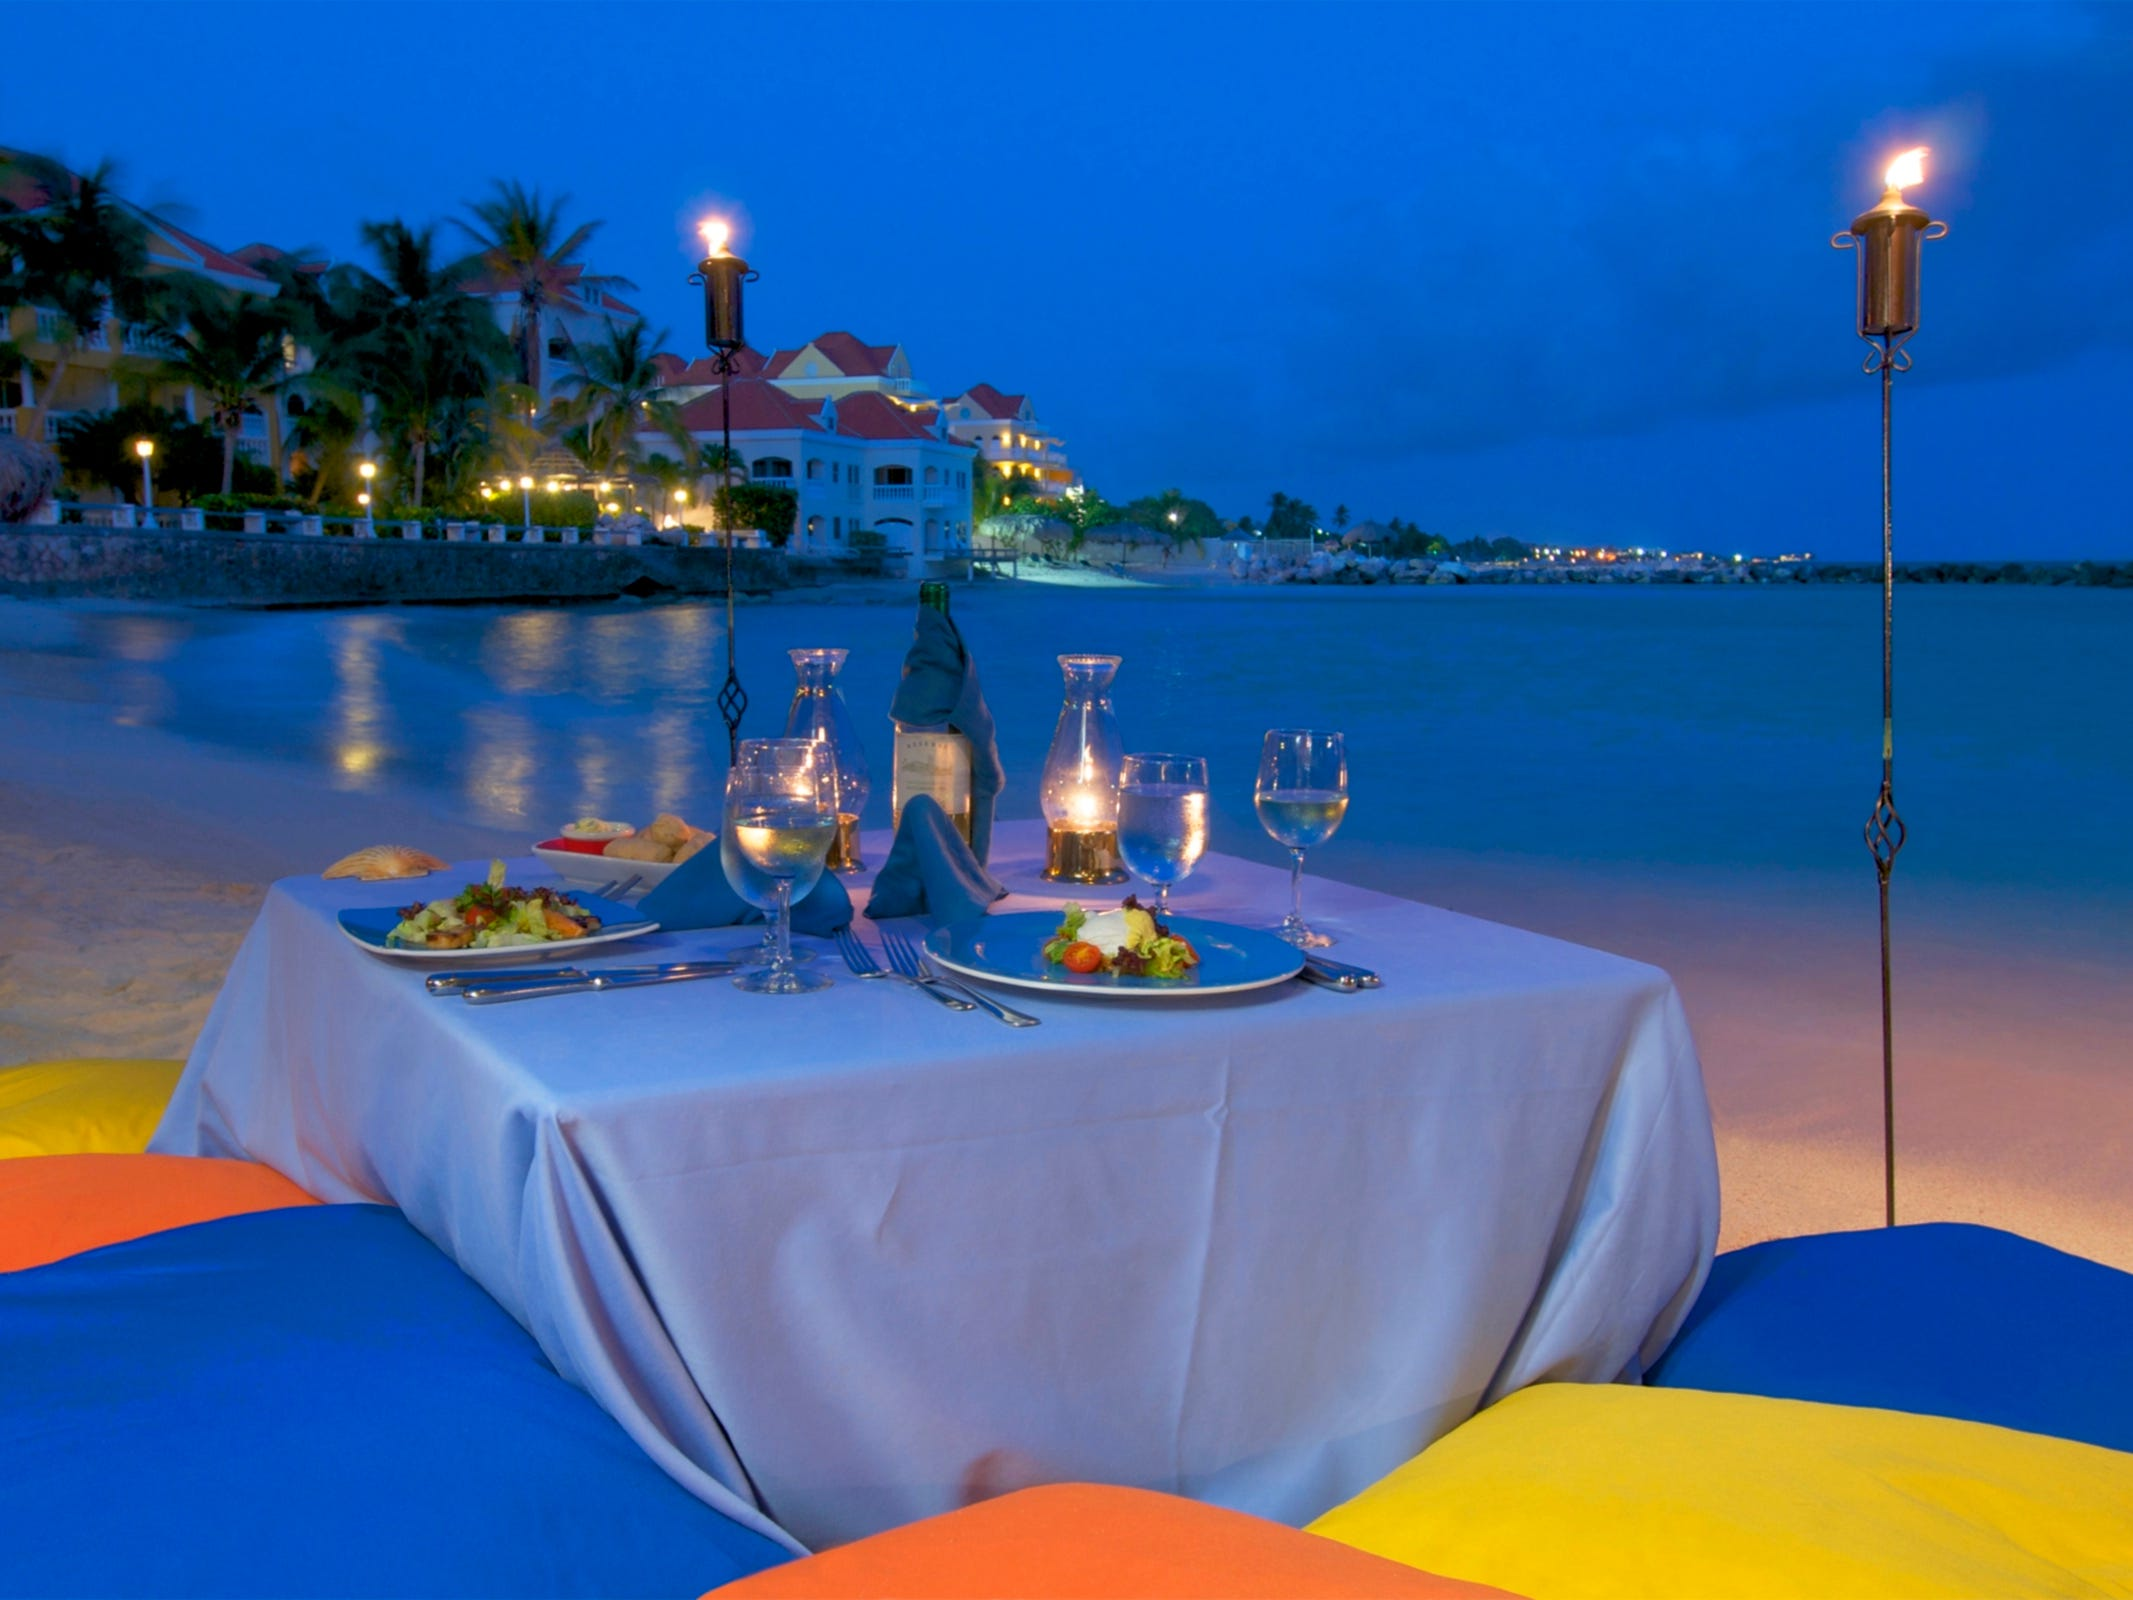 Lovers can book a romantic dinner on the beach at Avila Beach Hotel.